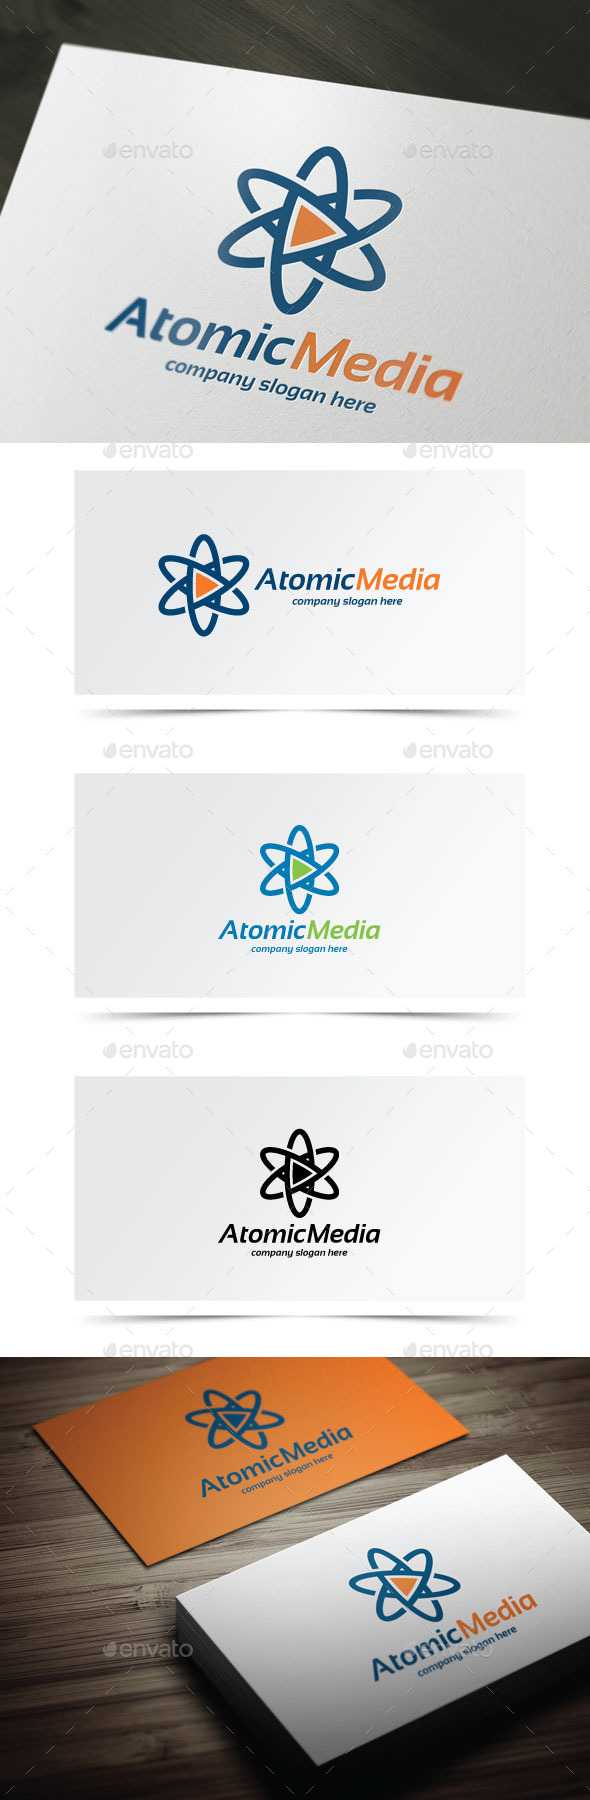 GraphicRiver Atomic Media 9205682